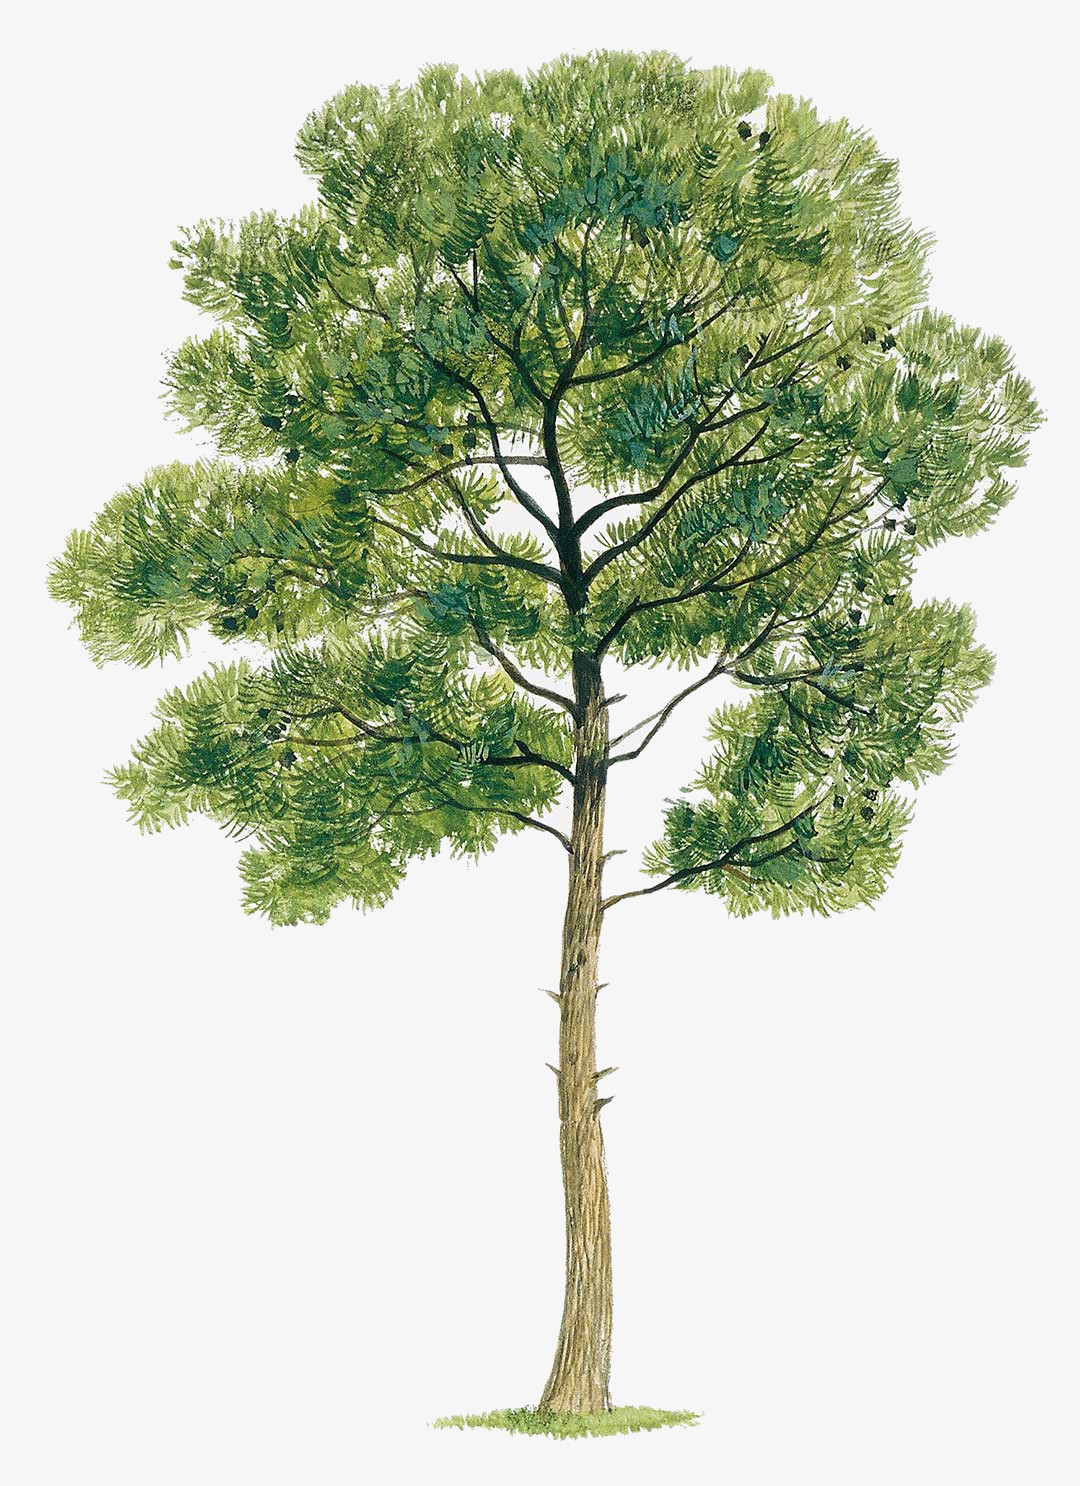 Pine tree illustration